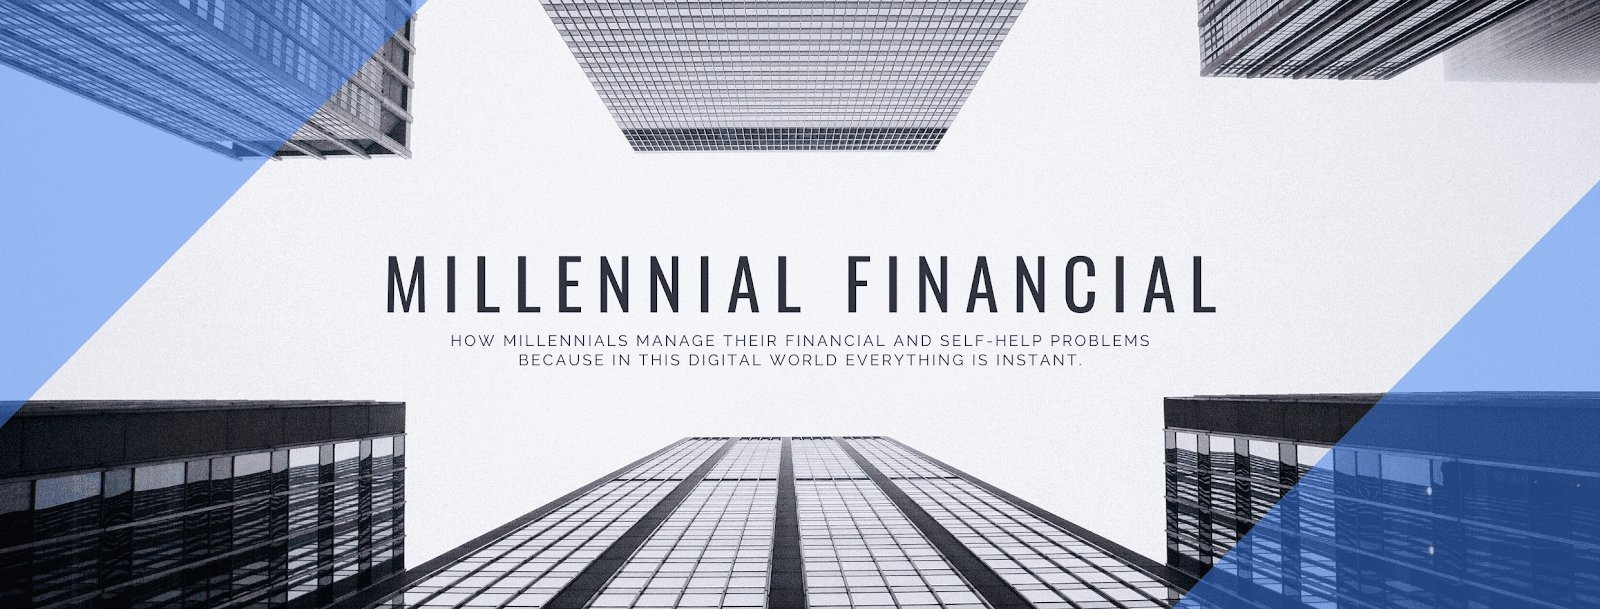 Millennial Financial